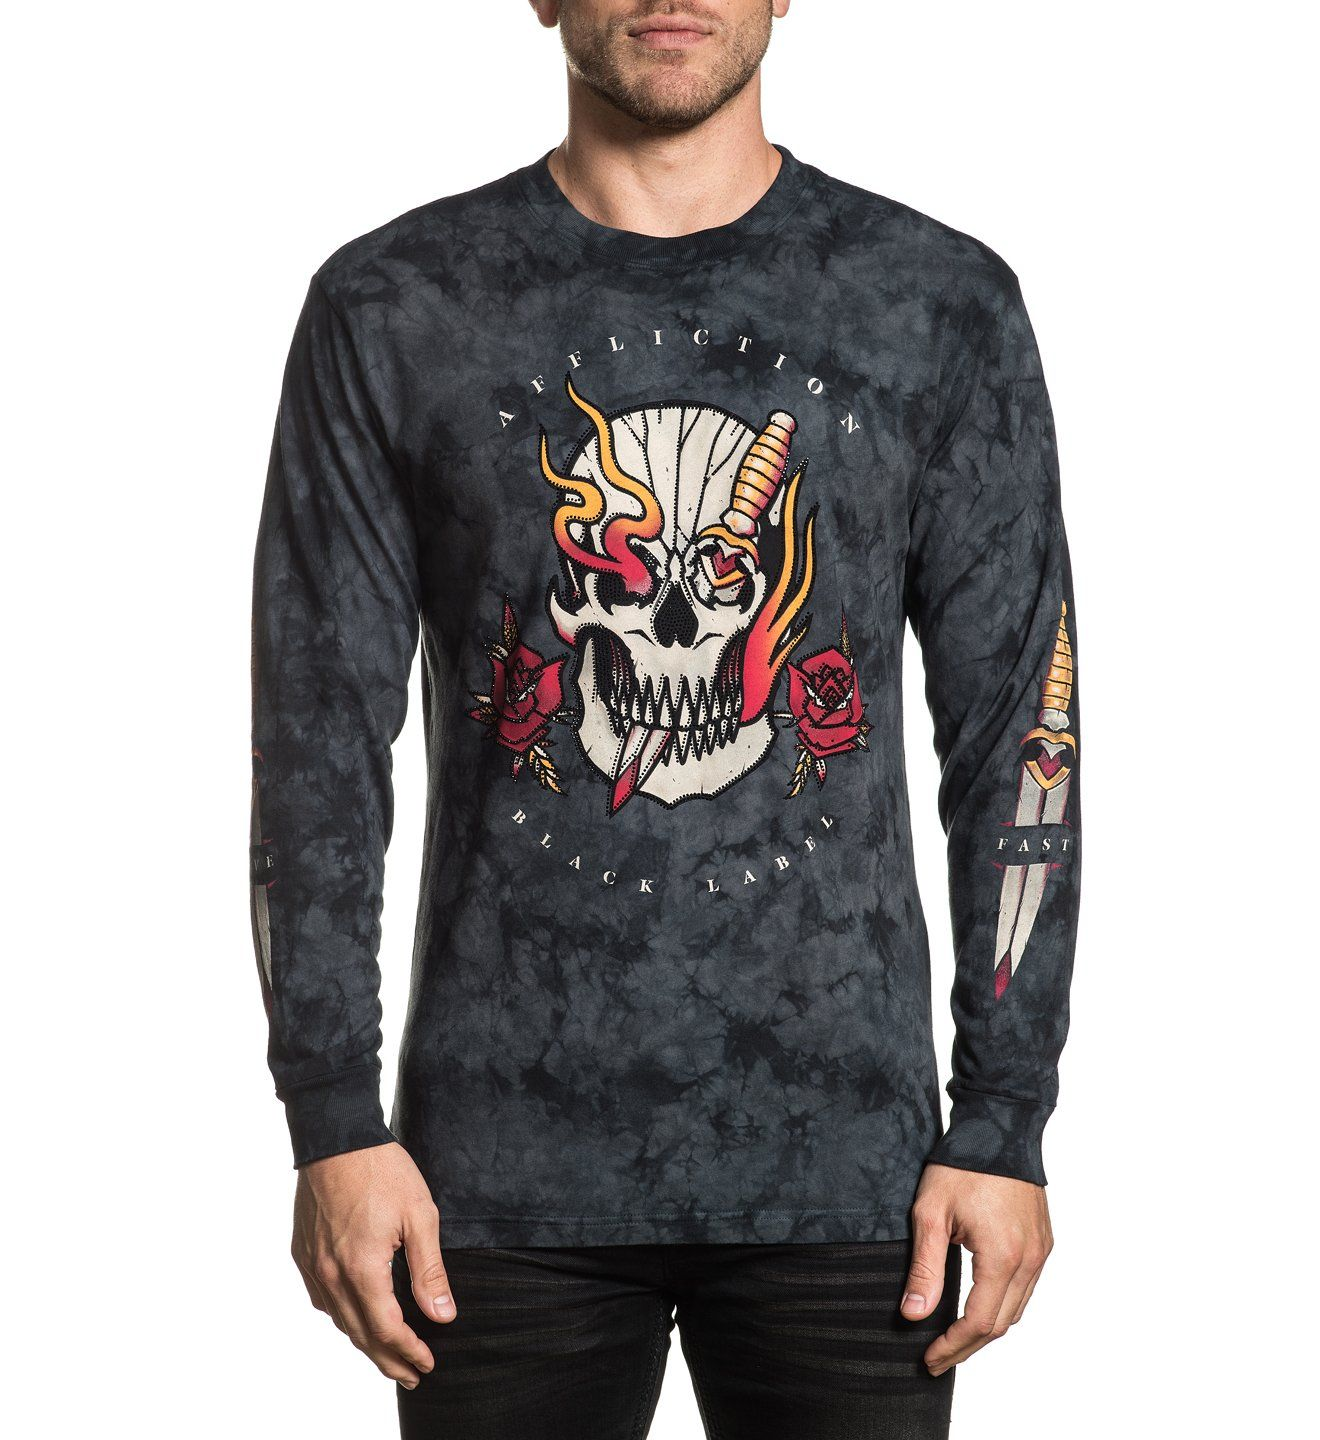 Bar Fight - Mens Long Sleeve Tees - Affliction Clothing